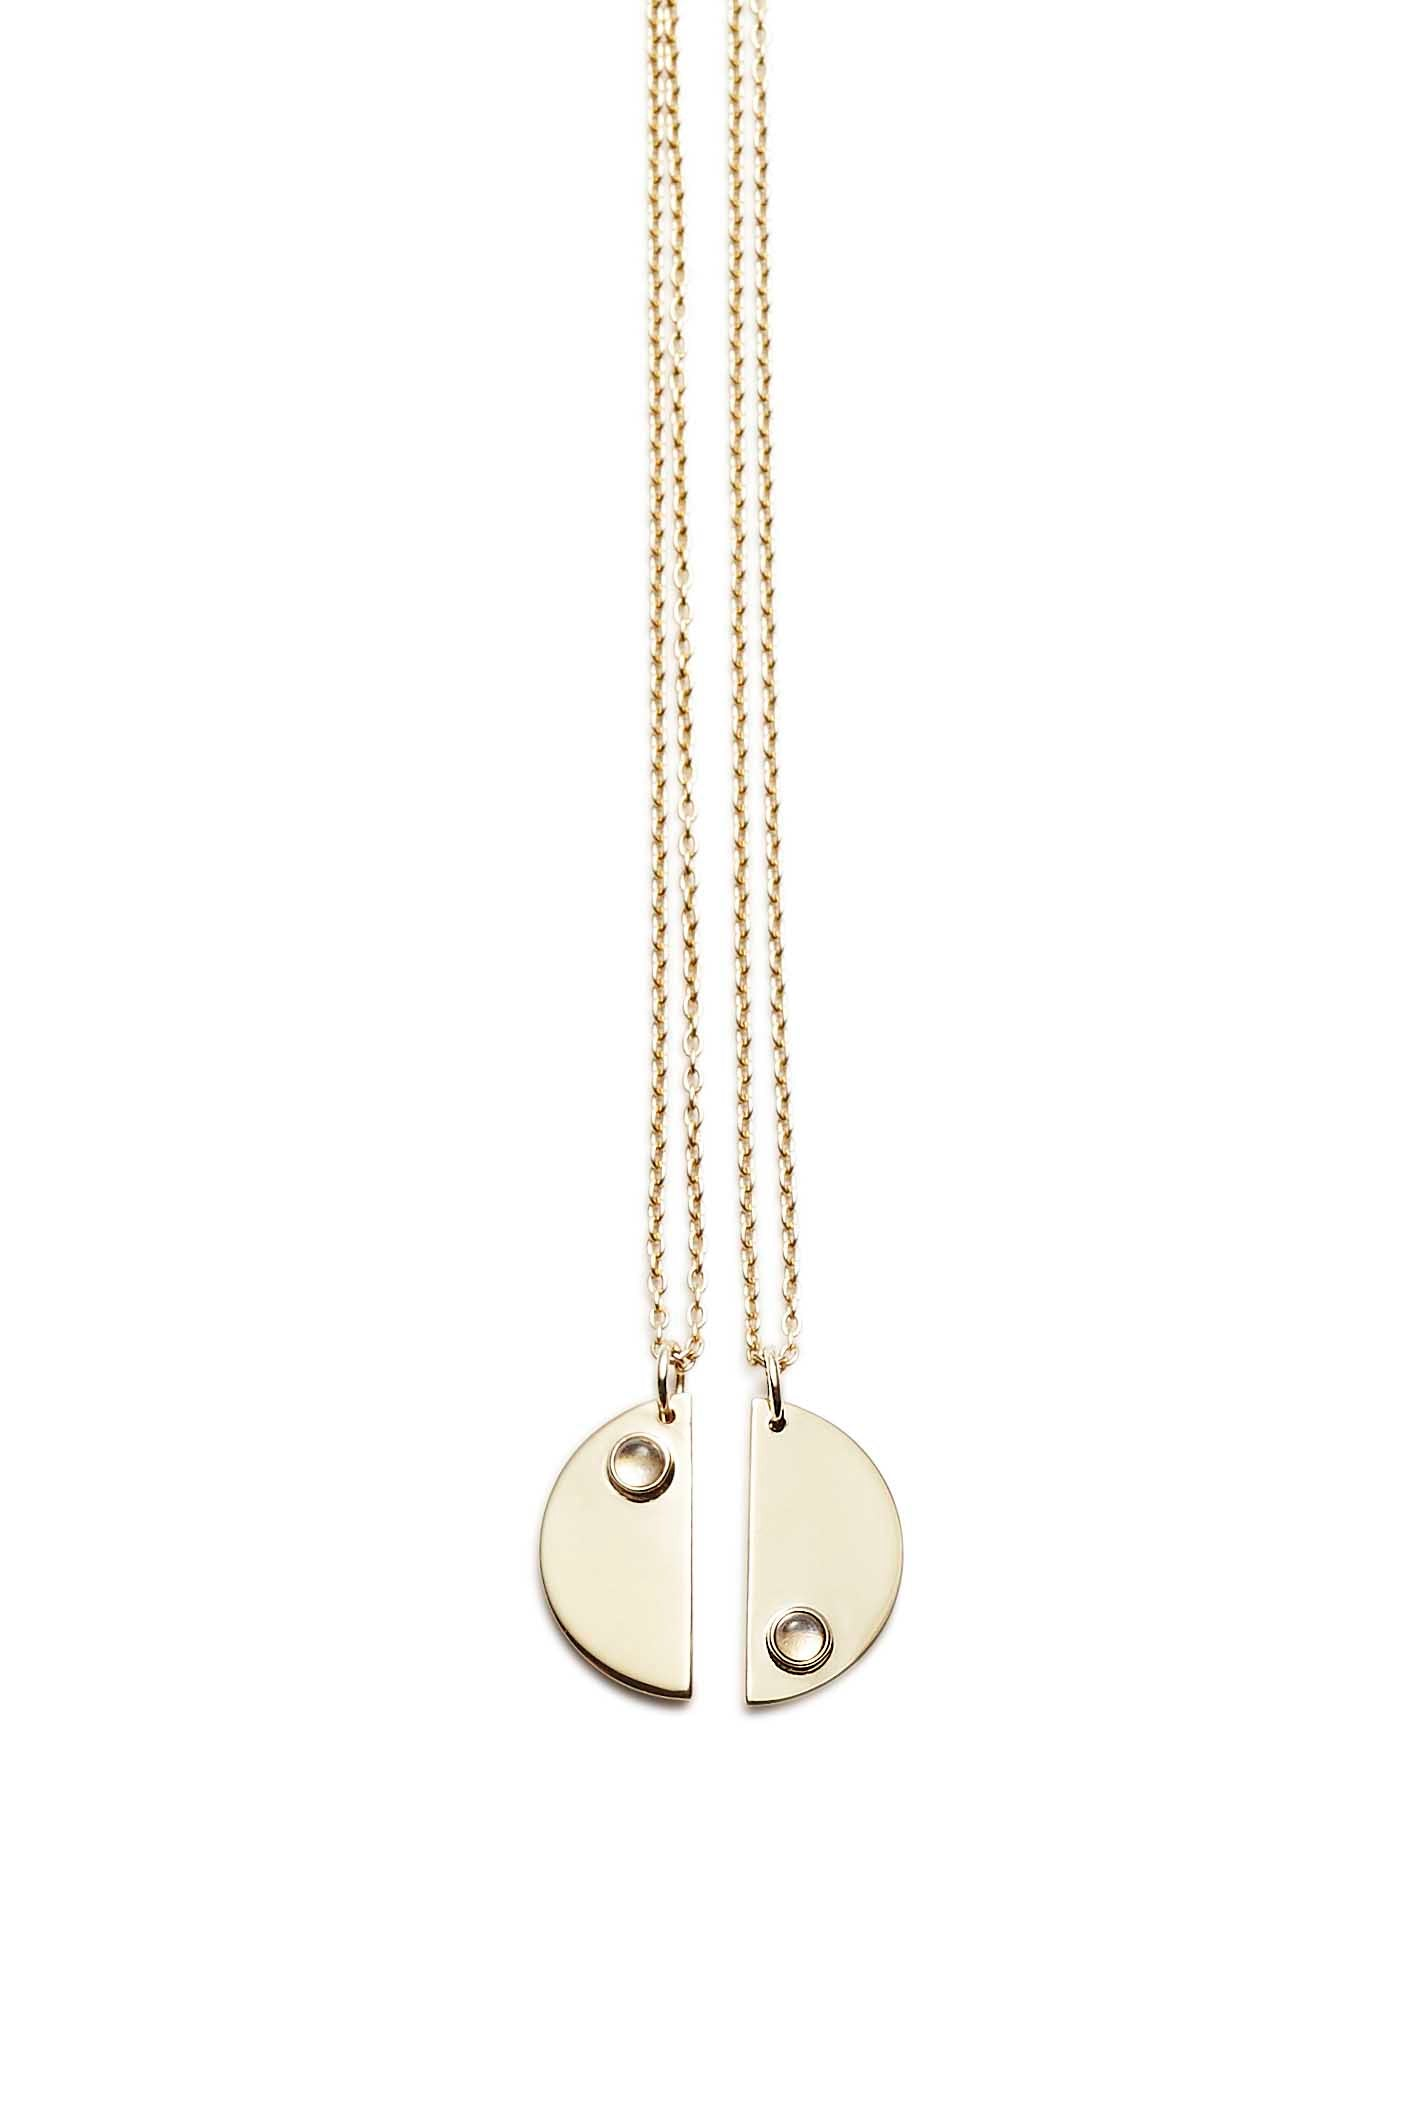 Double Moon Necklaces · Gold plated - Trine Tuxen Jewelry